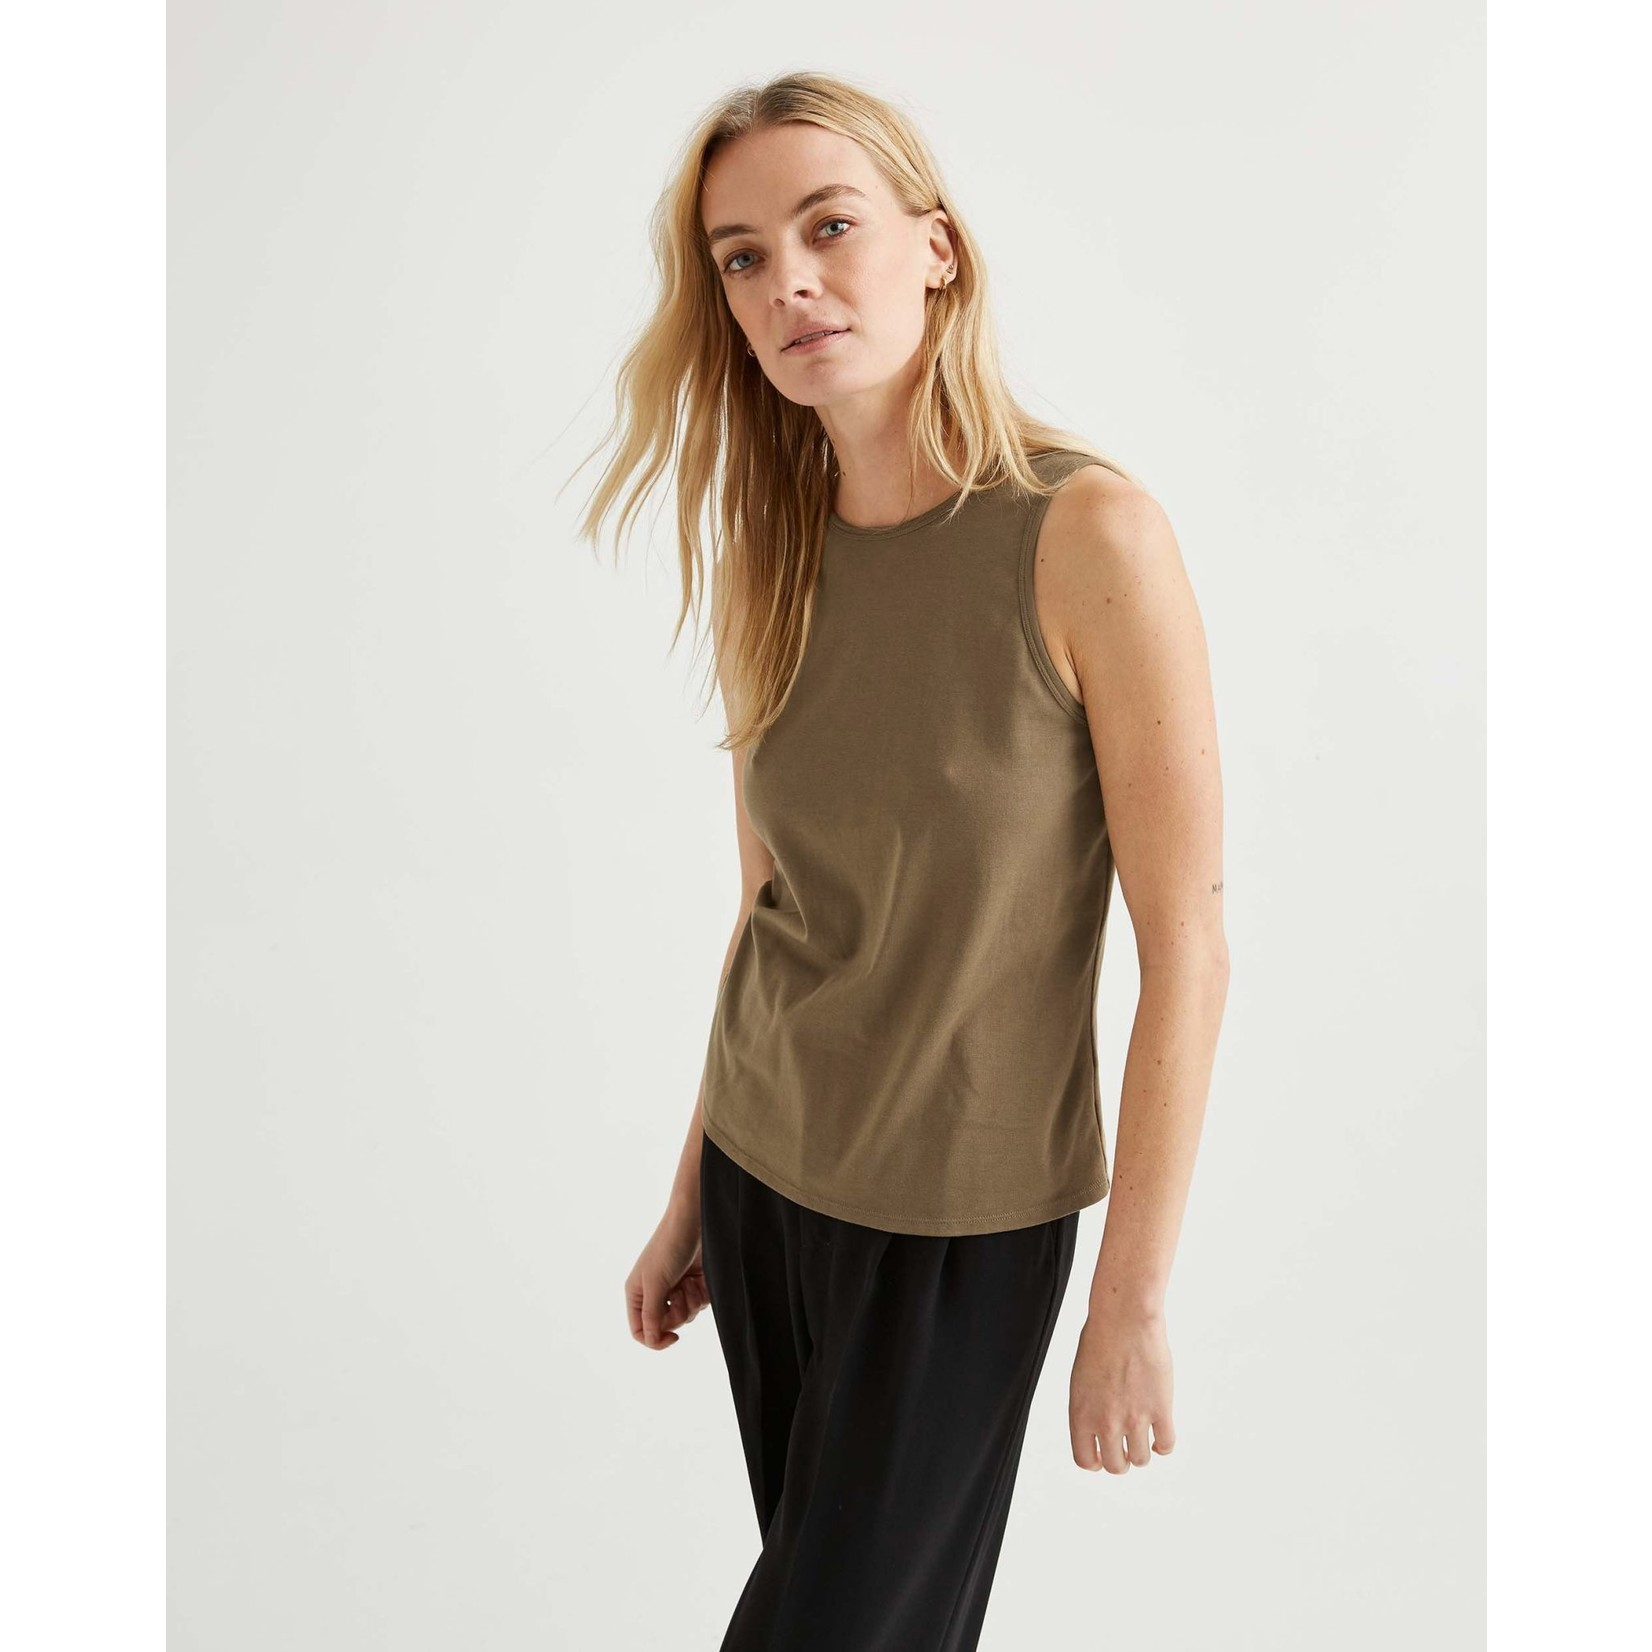 Richer Poorer Backless camisole cub XS